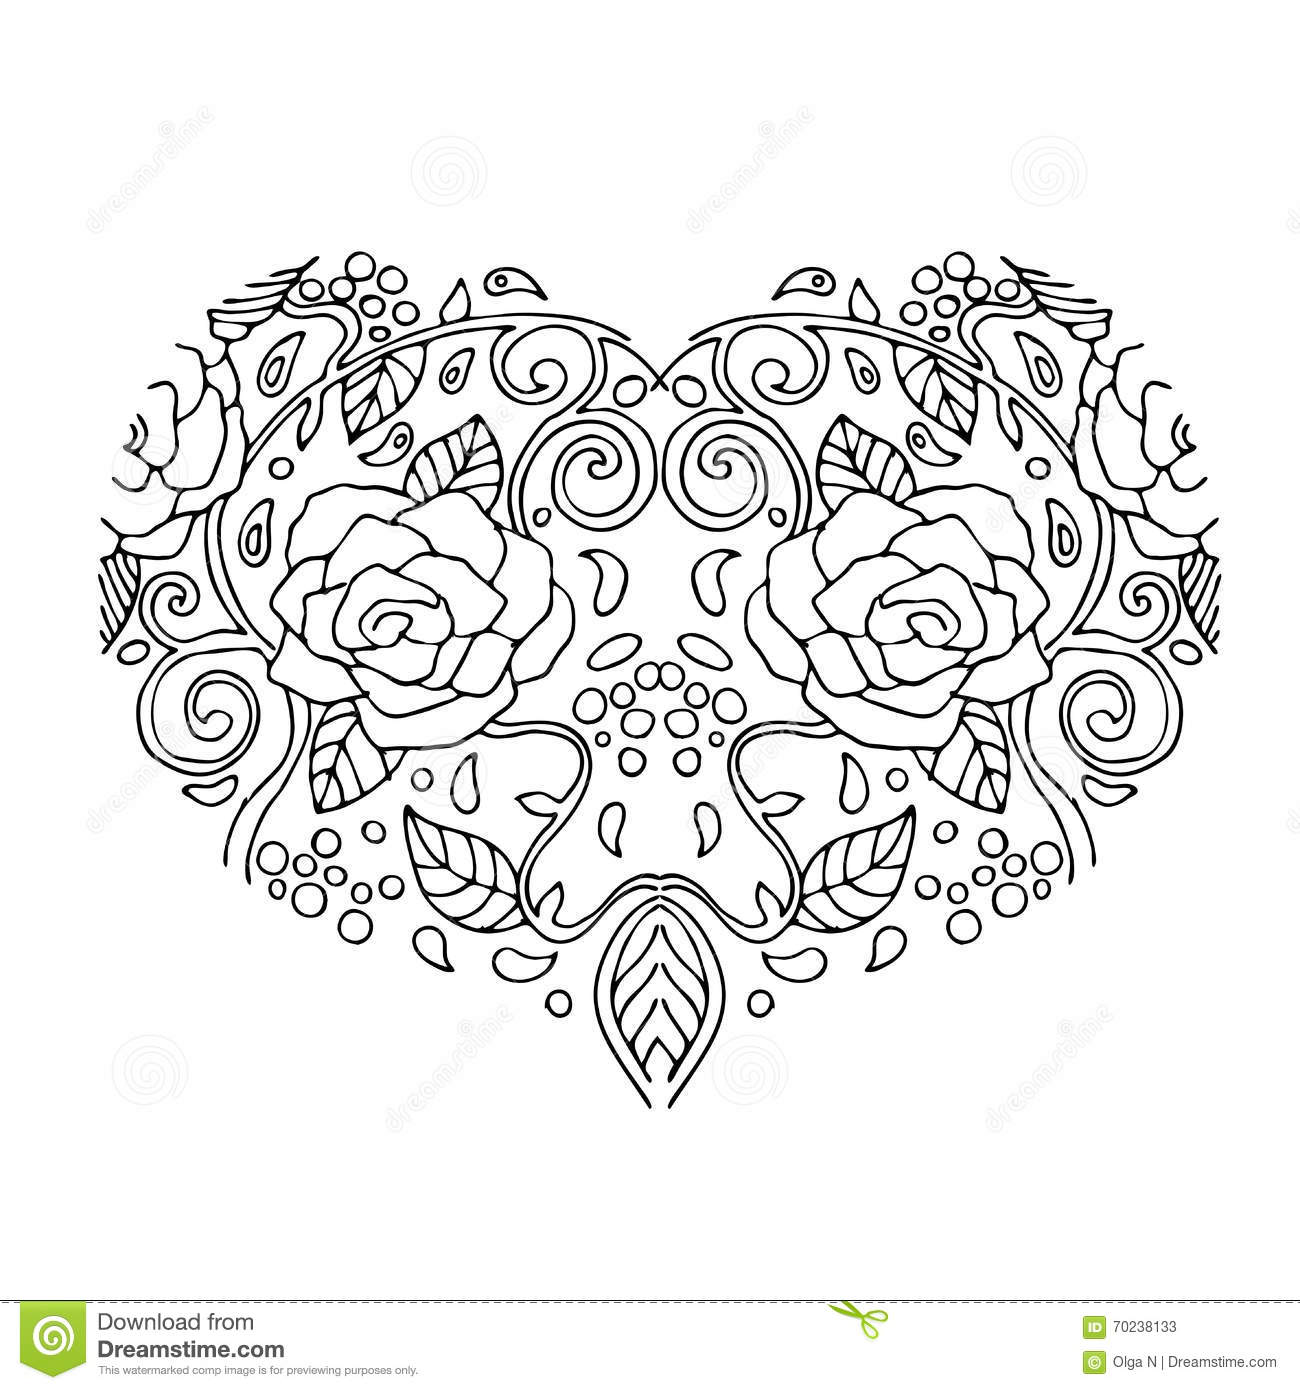 Coloring pages for adults valentines day - Decorative Love Heart With Flowers Valentines Day Card Coloring Book For Adult And Children